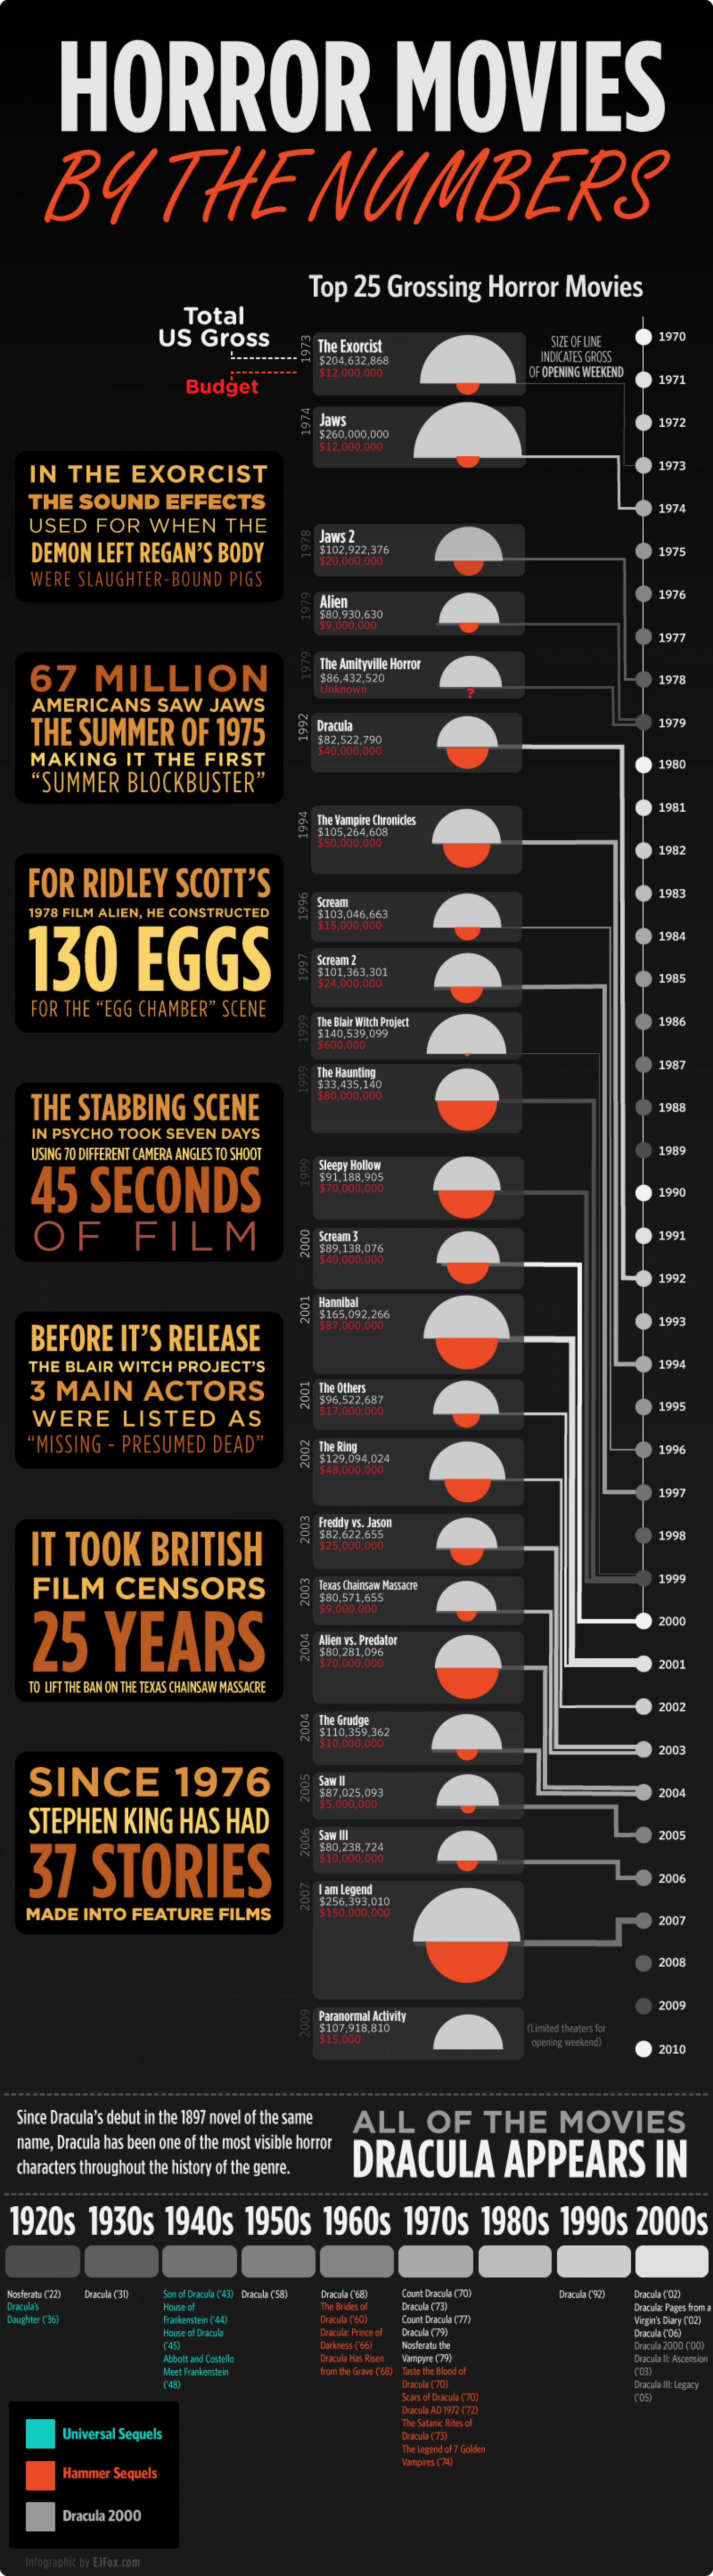 History of Horror Movies By the Numbers Infographic